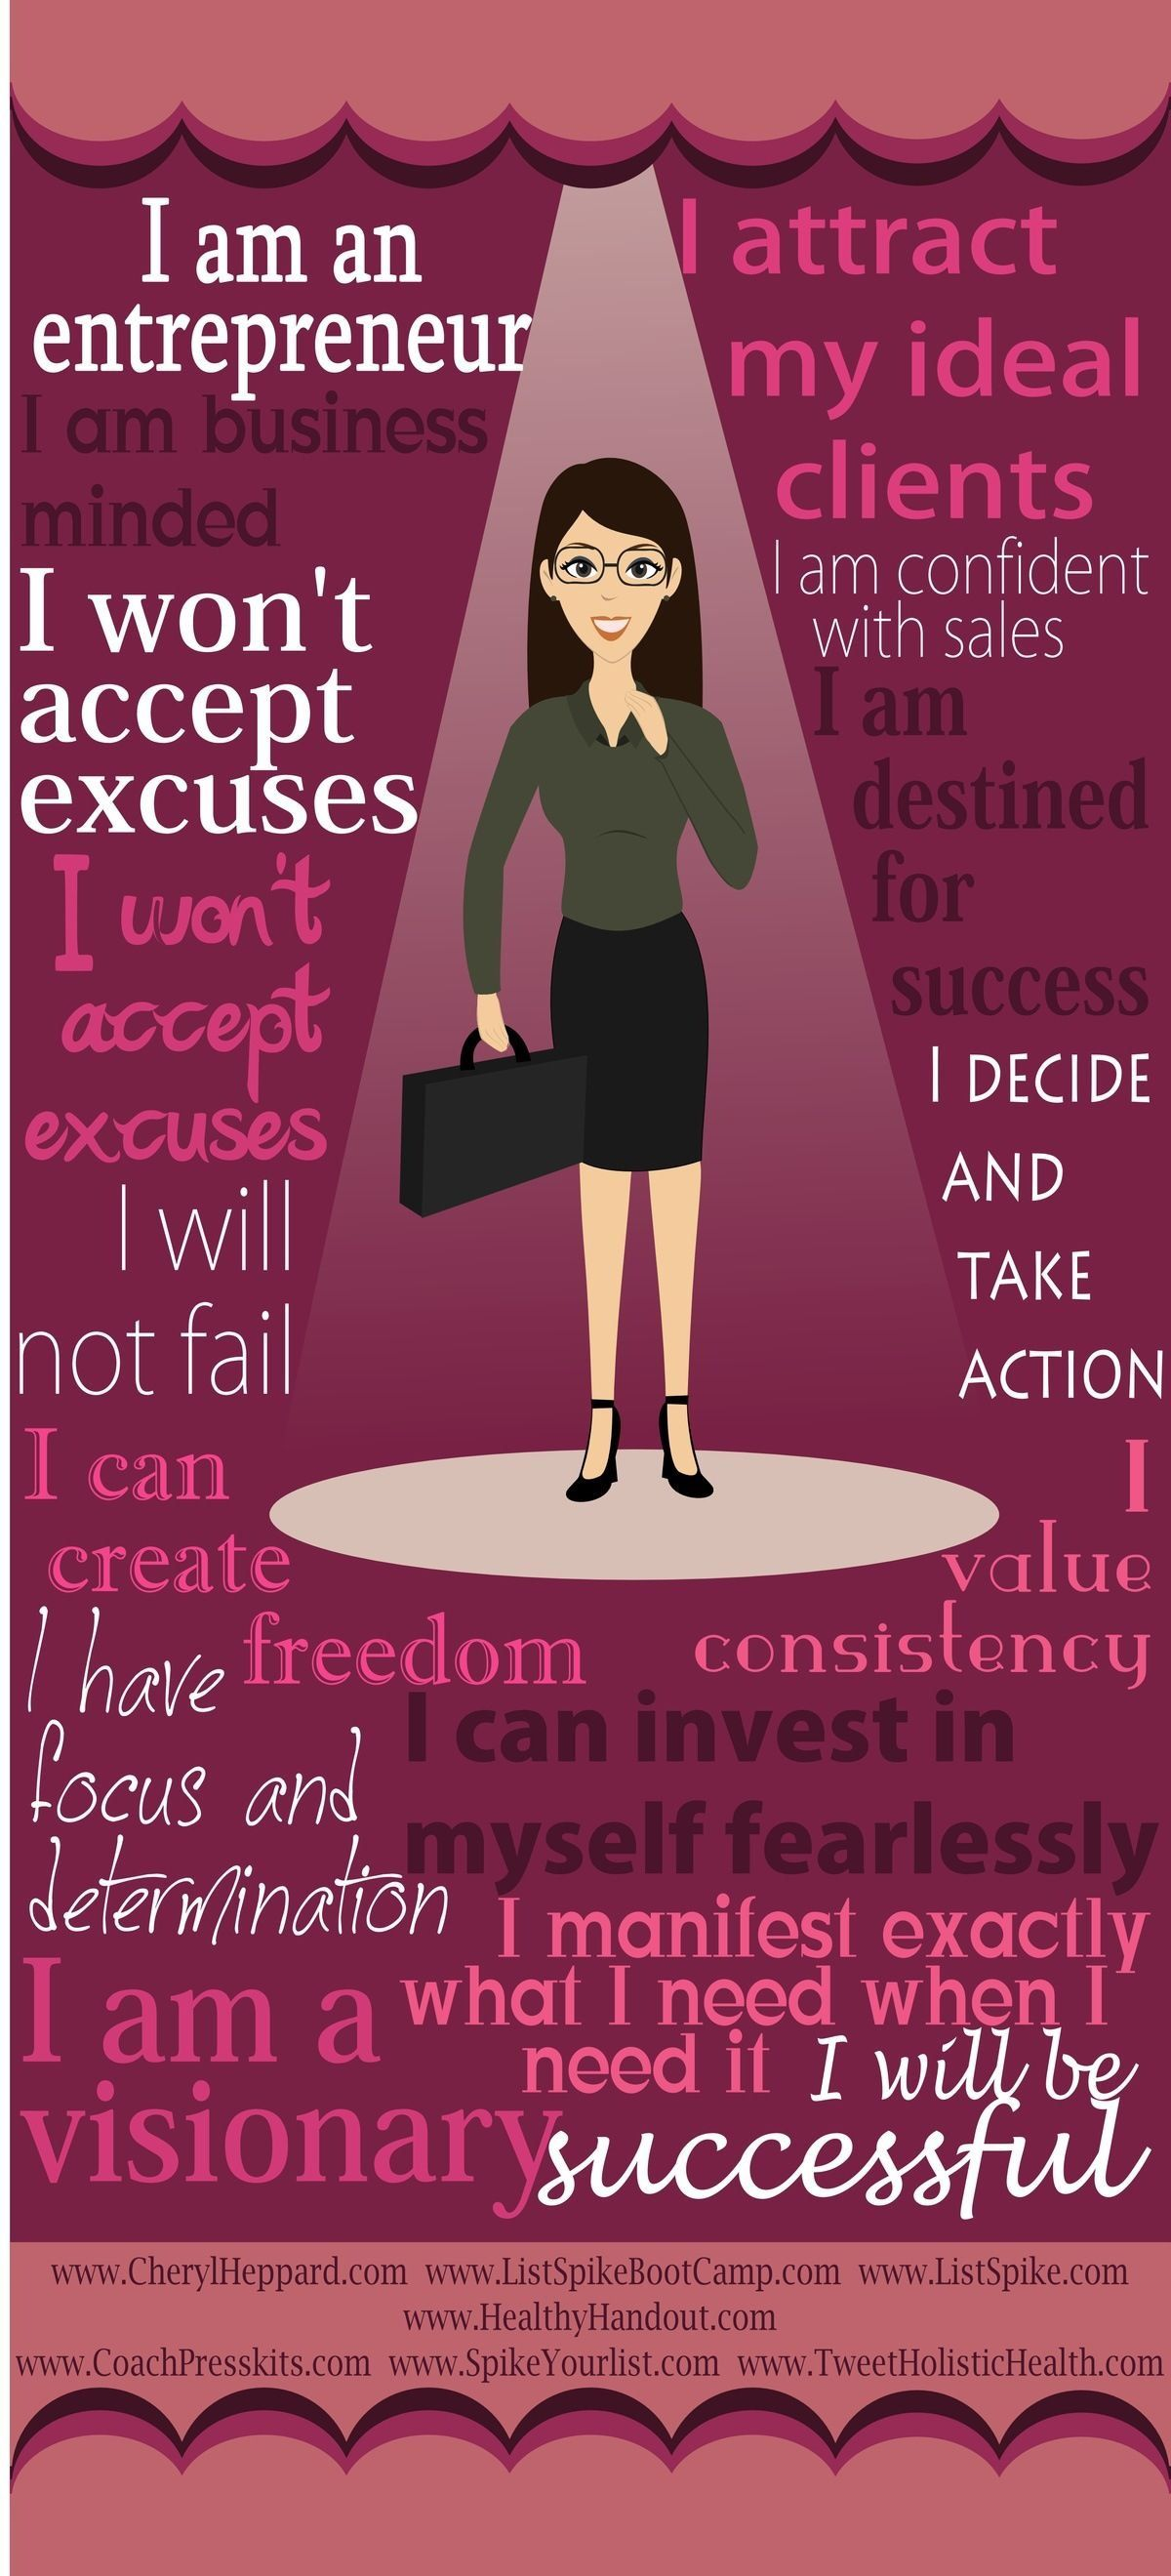 want and mary kay Mary kay ash was the inspirational business leader and  she believed in the  golden rule treat others as you want to be treated, and.